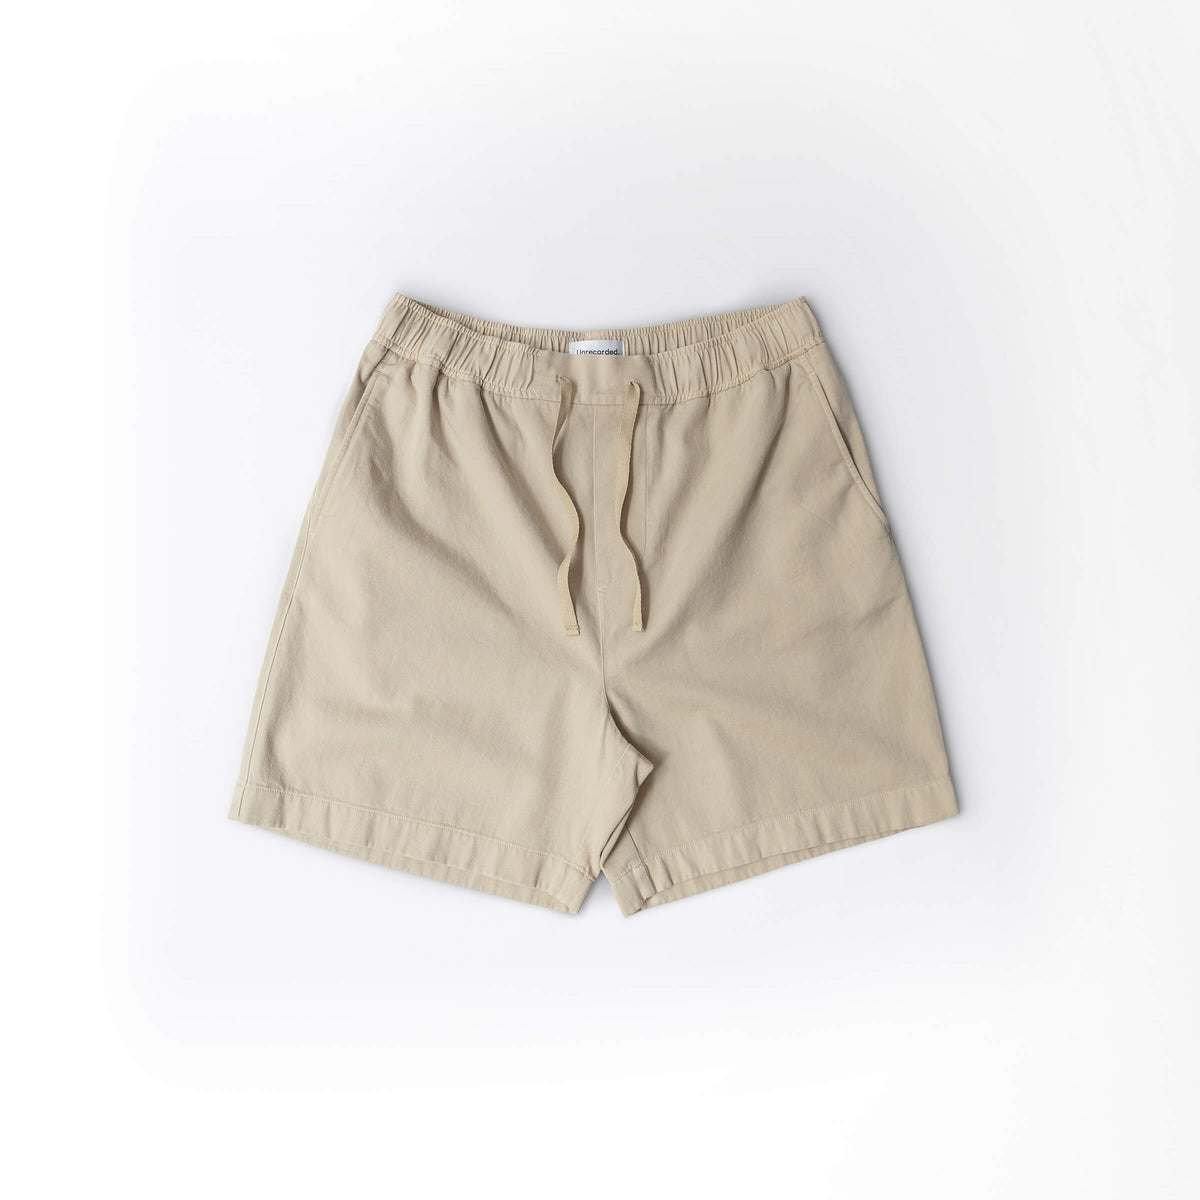 Drawstring Shorts Khaki - Unrecorded